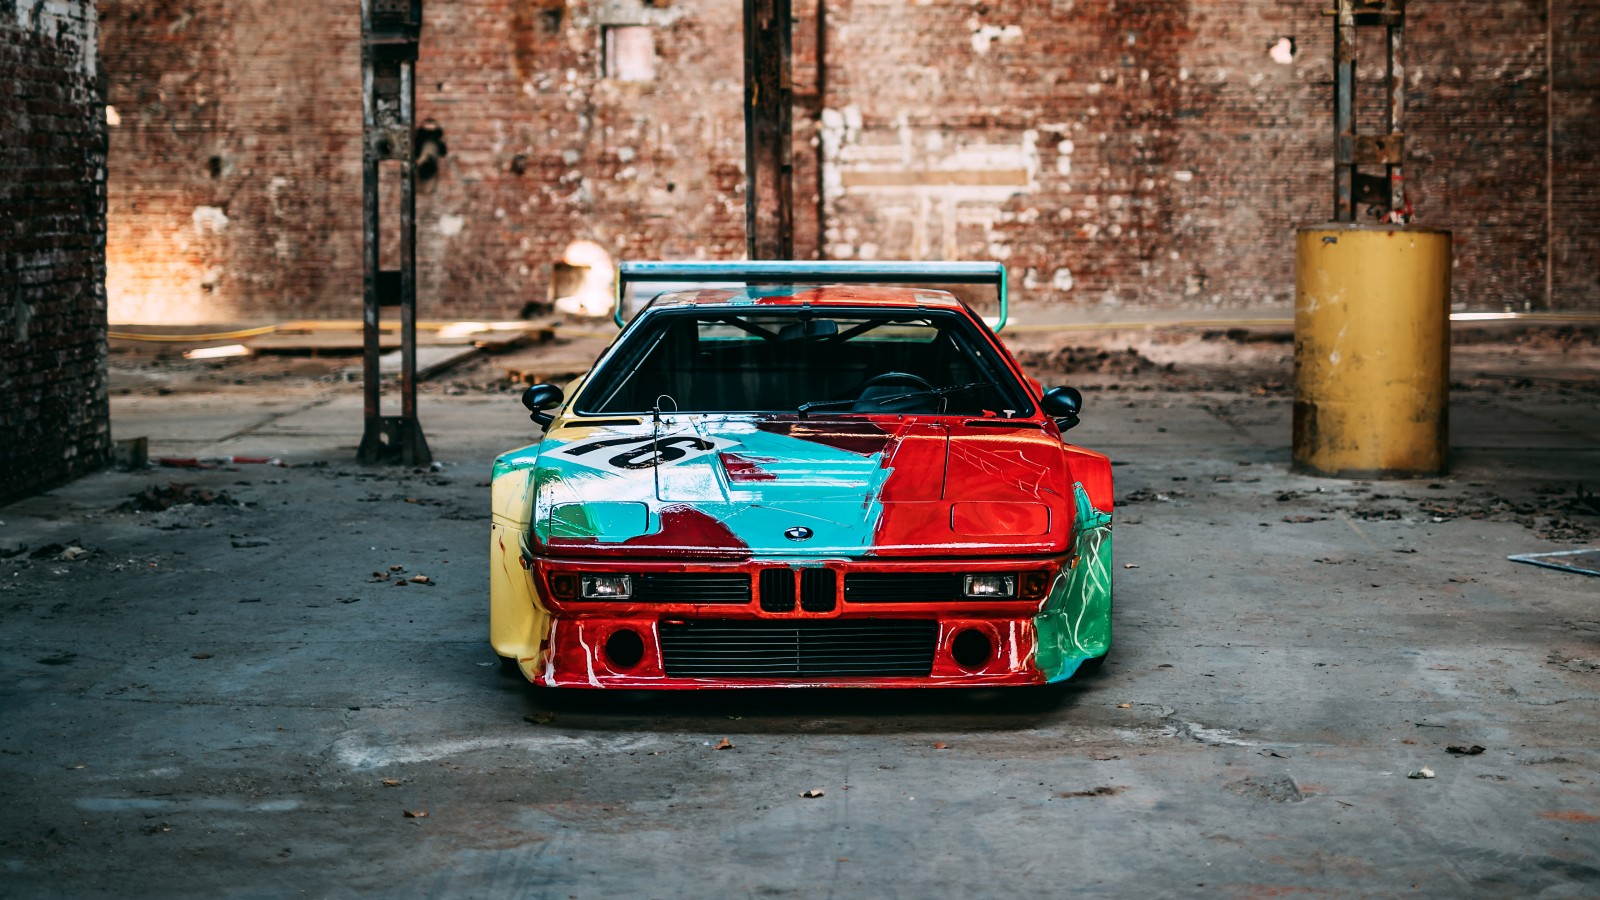 Bmw M1 Group 4 Rennversion Art Car By Andy Warhol